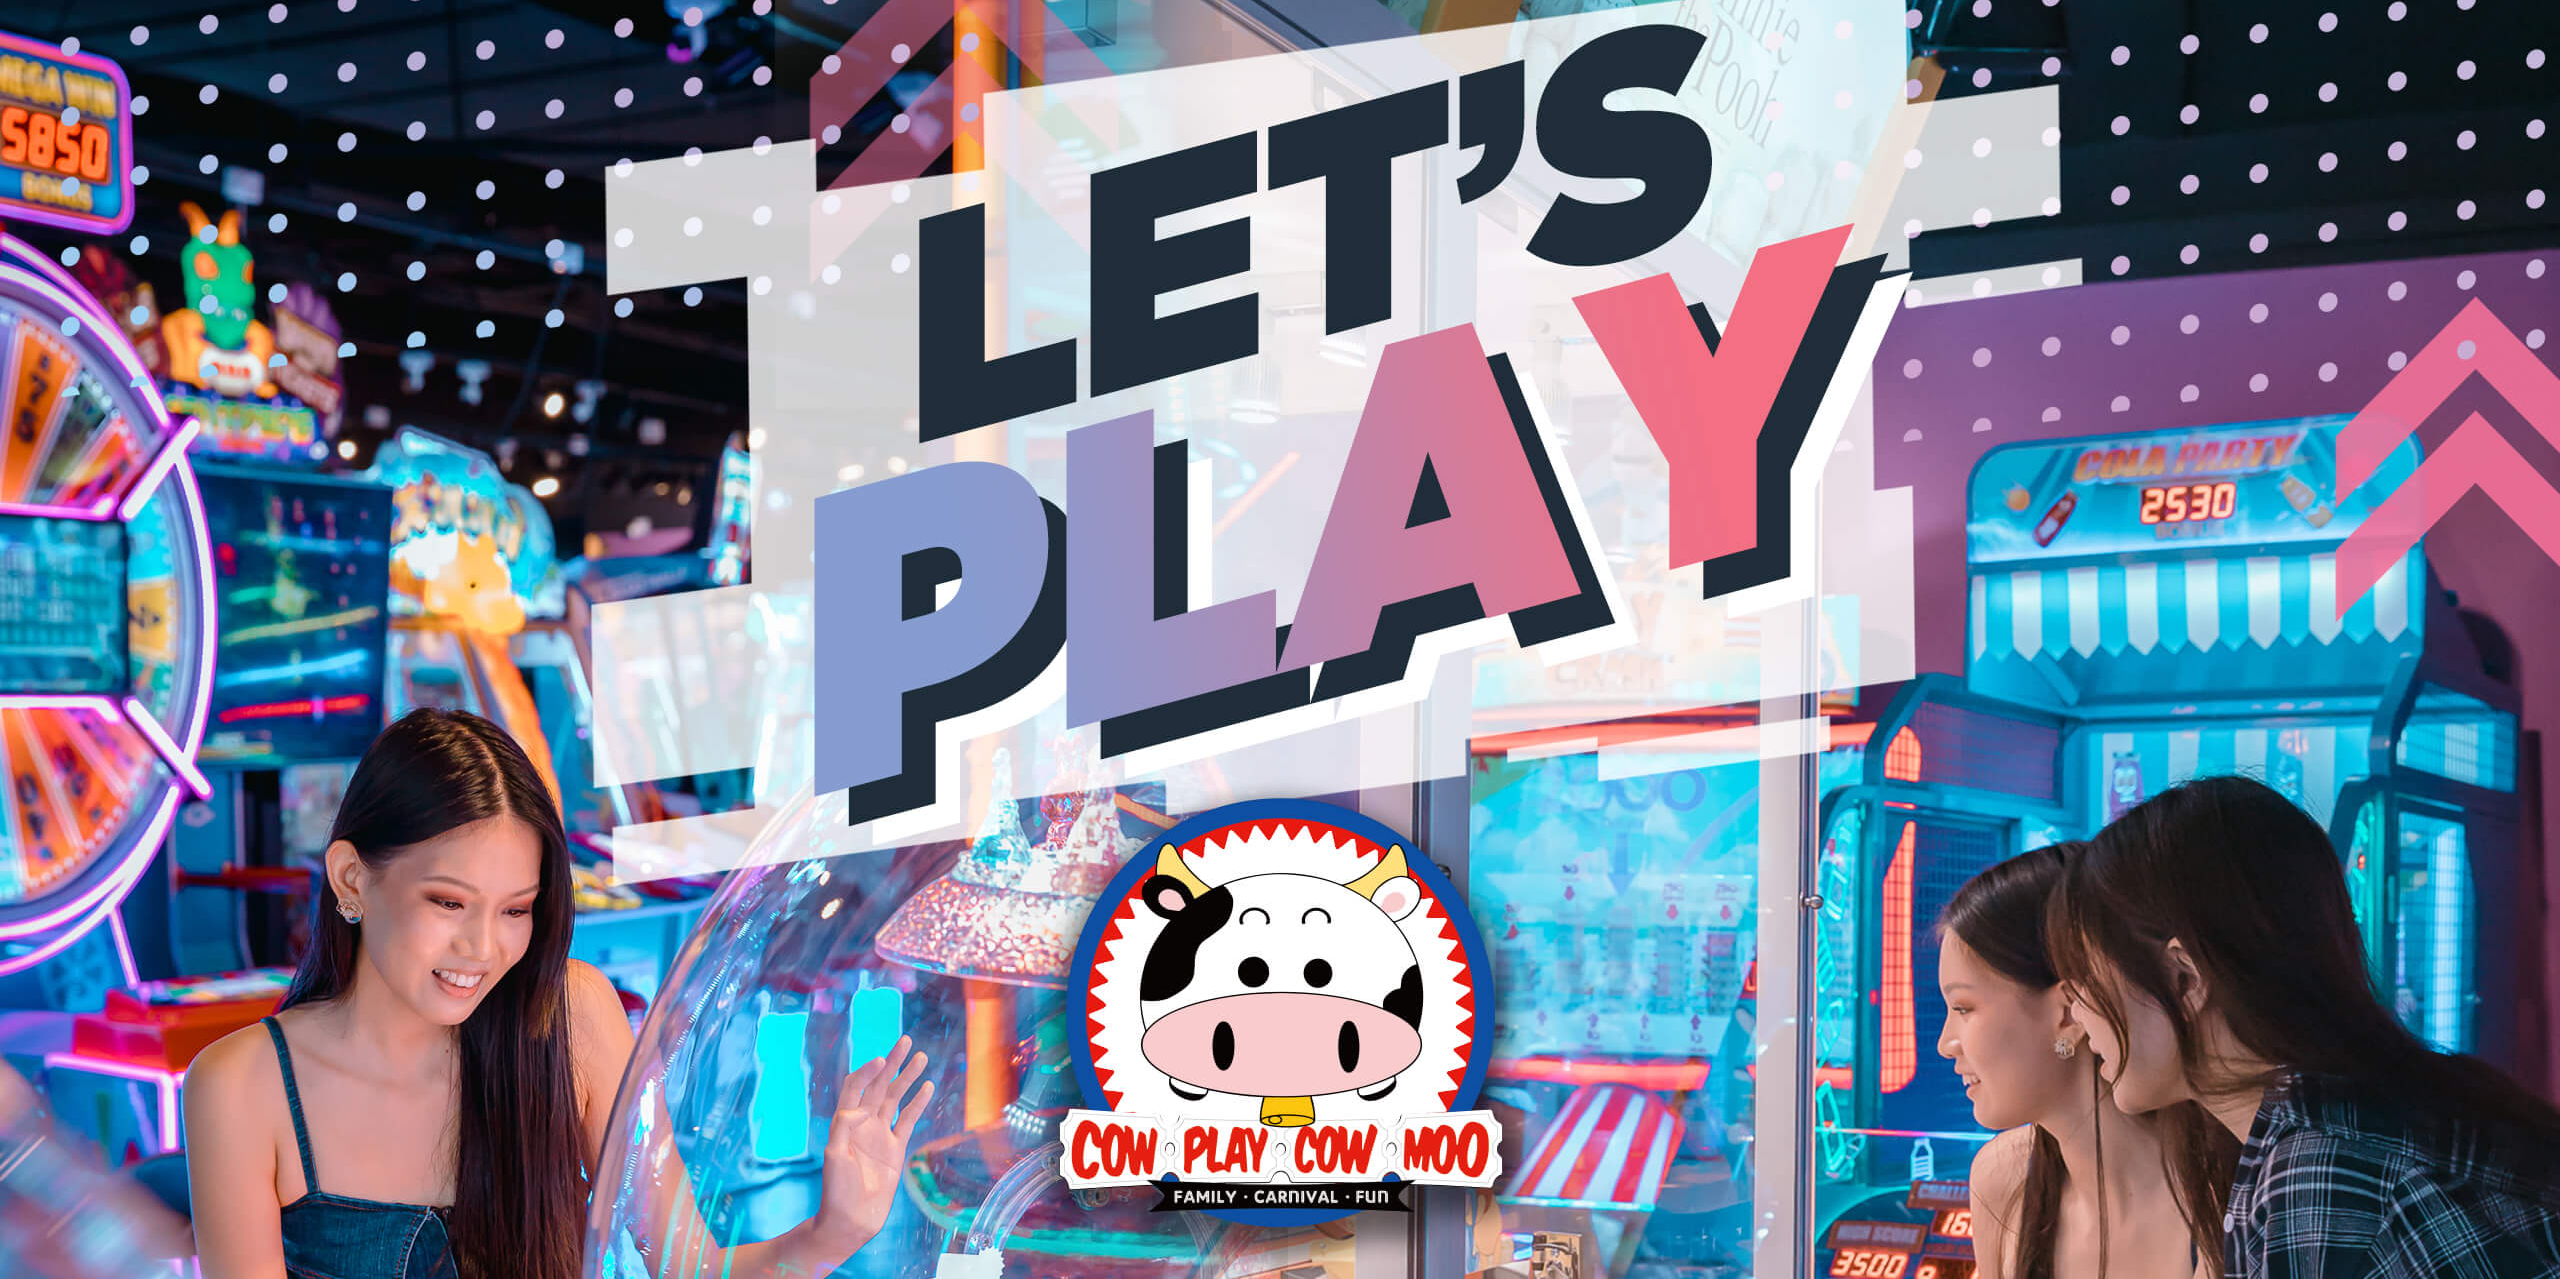 Play Time With Up To 50% More and $10 return vouchers at Jurong Point